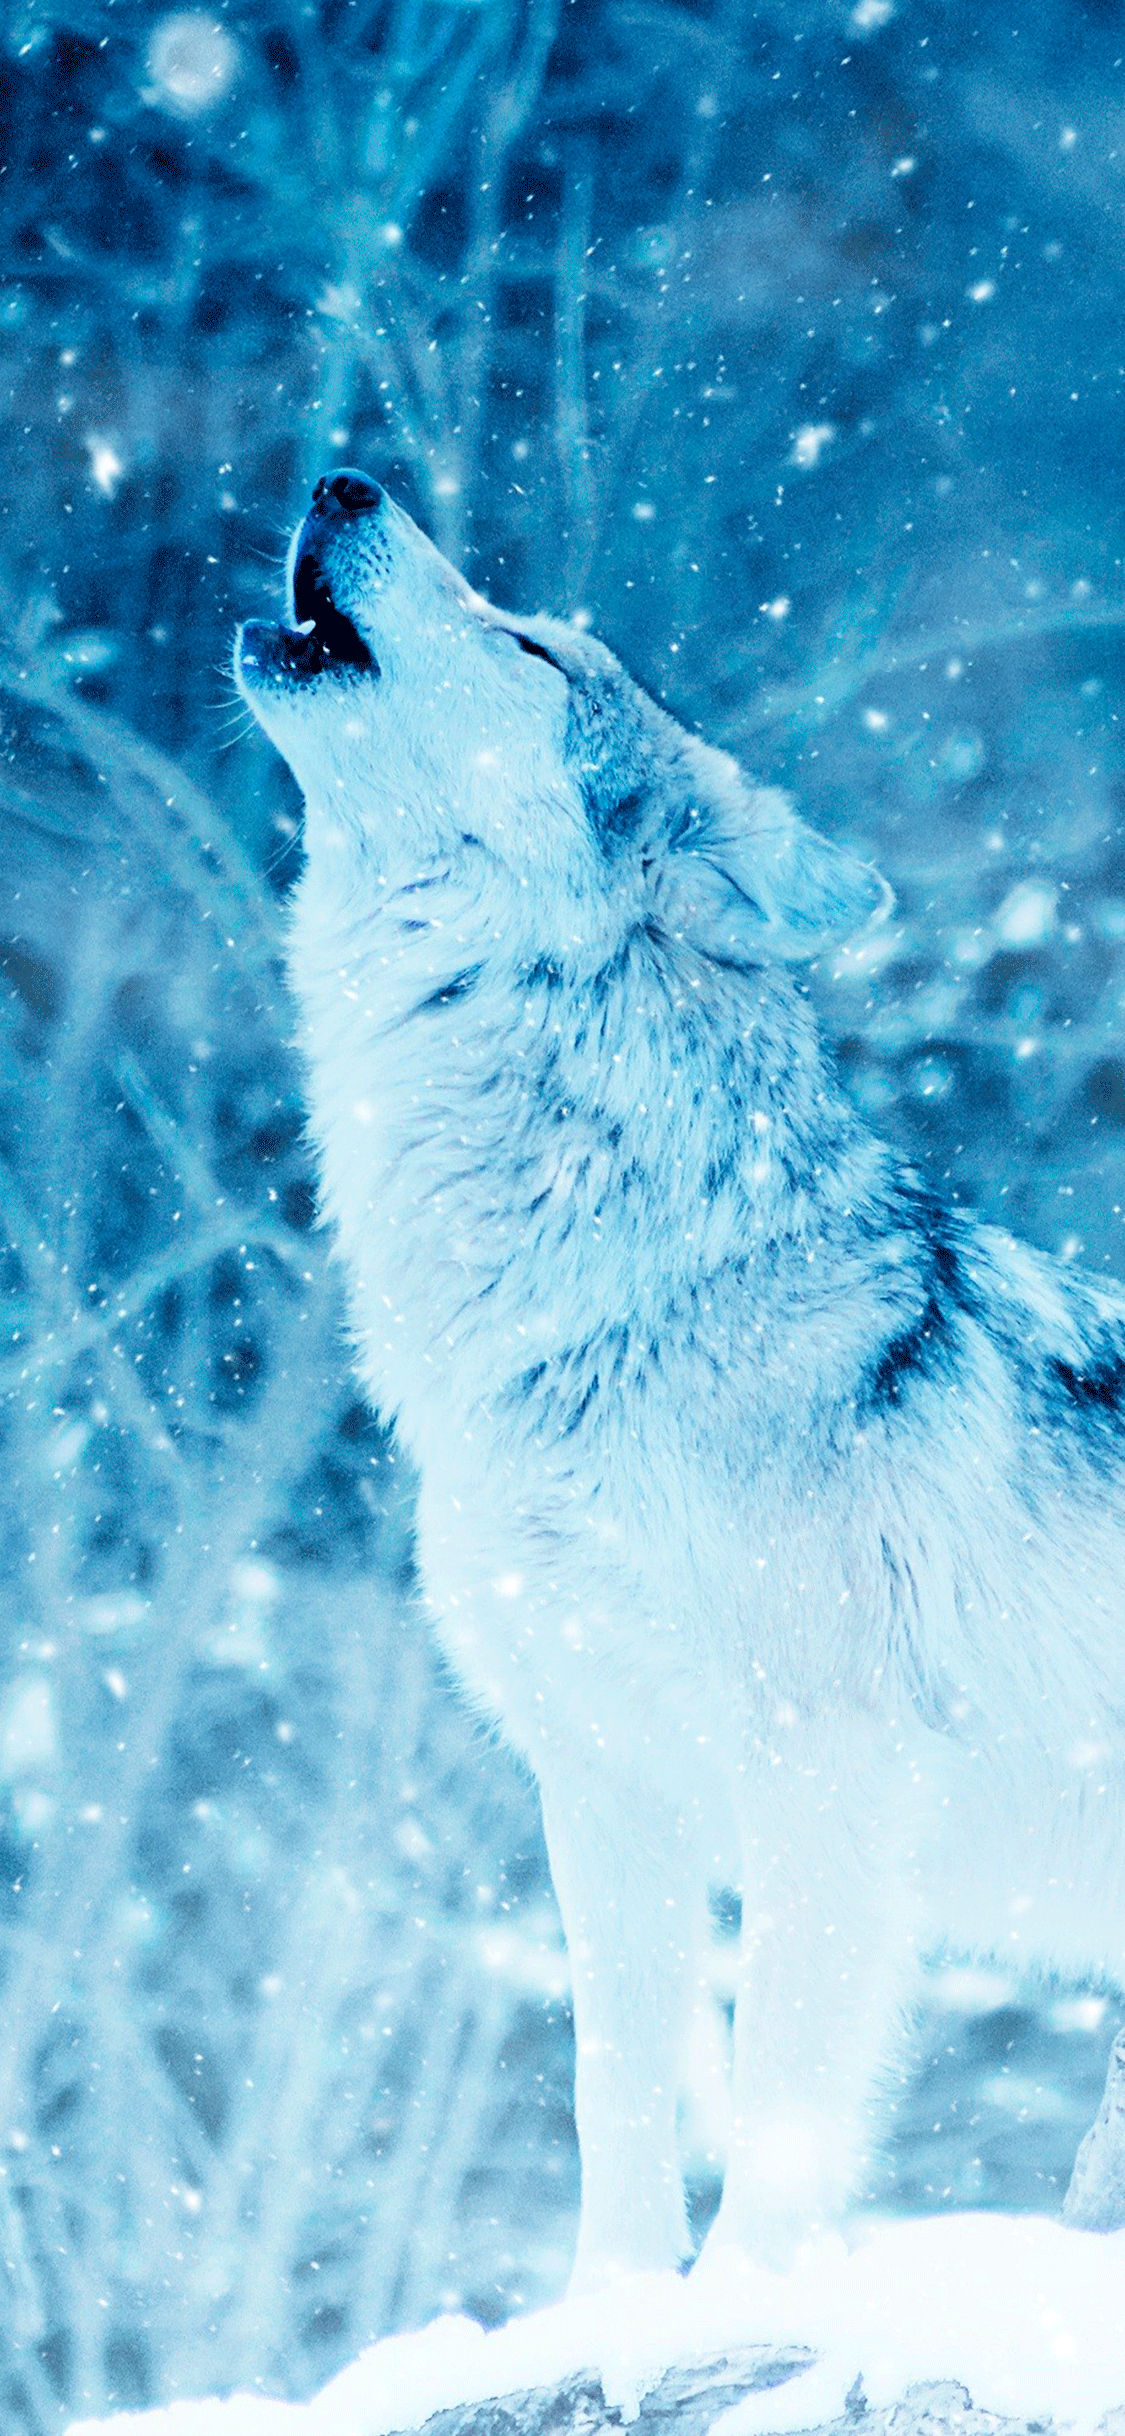 iPhone wallpaper wolf snow Wolf